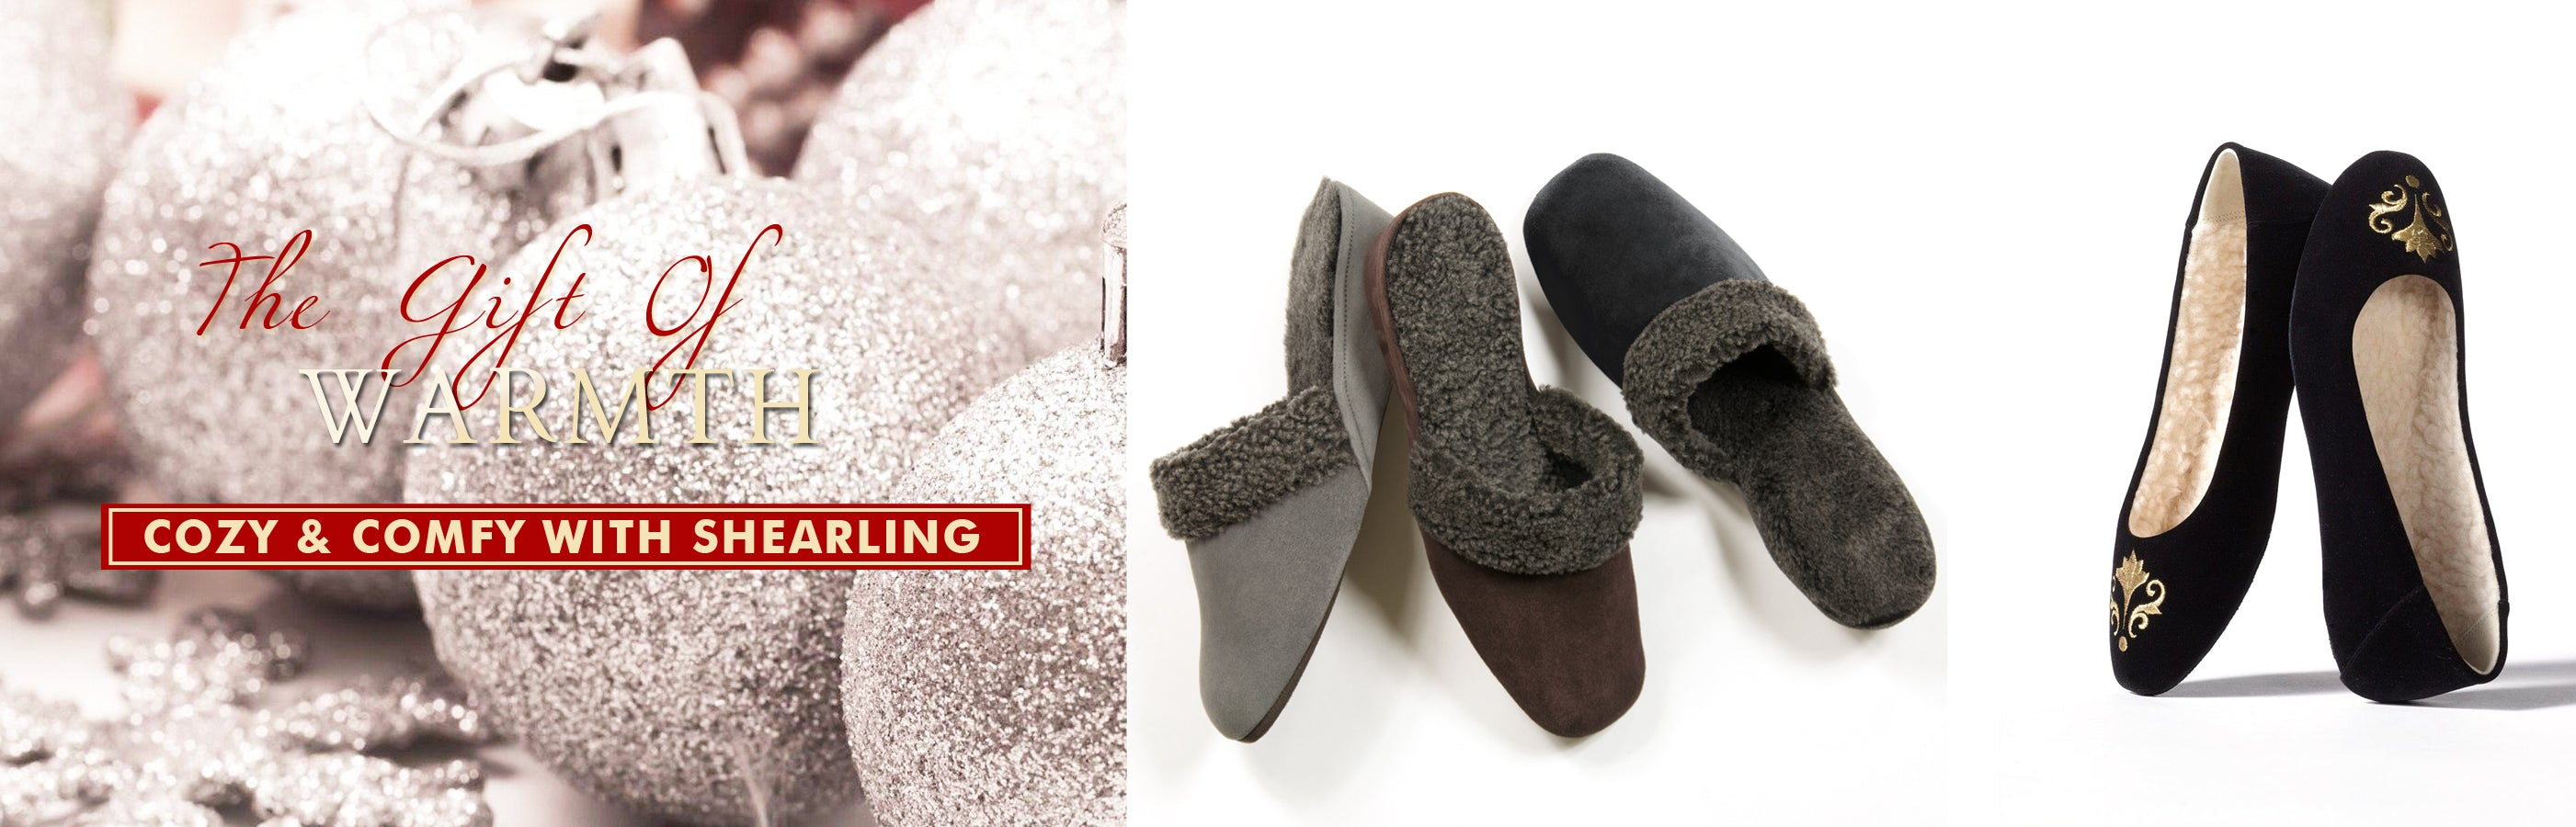 Guift Guide 2016: Shearling and Cozy